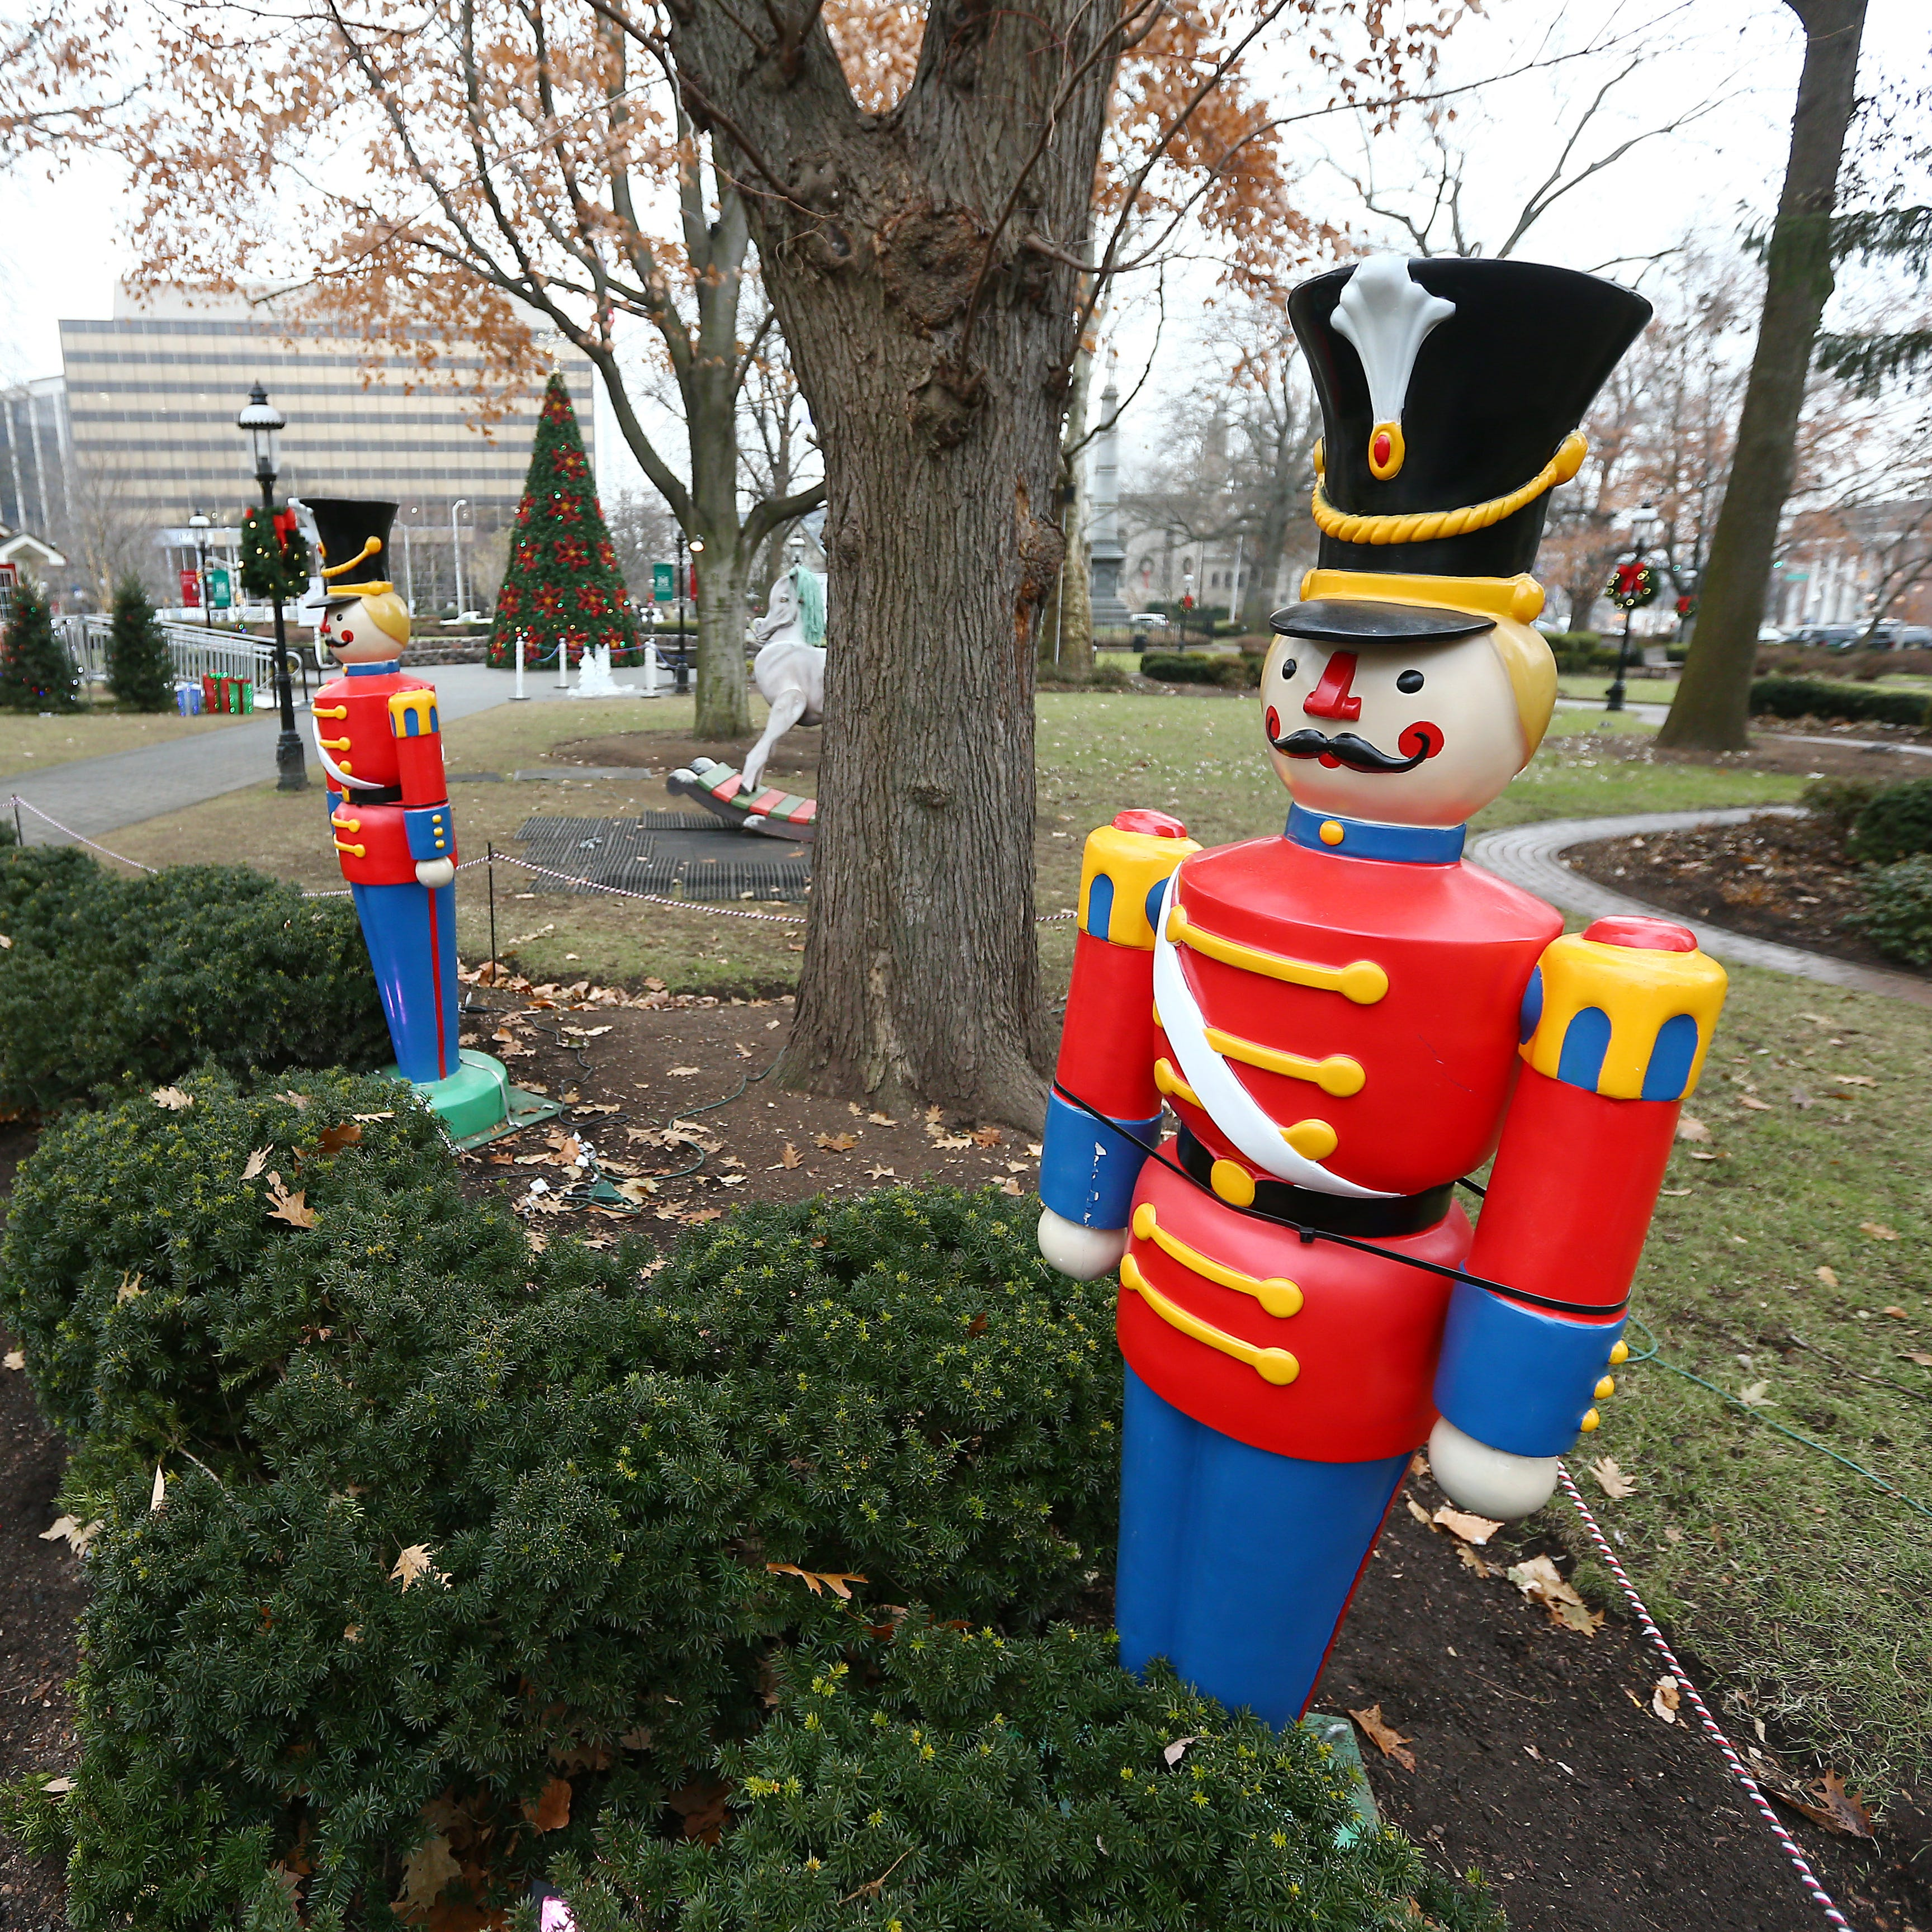 Video catches 'Grinch' stealing toy soldier from Morristown Green Christmas fest